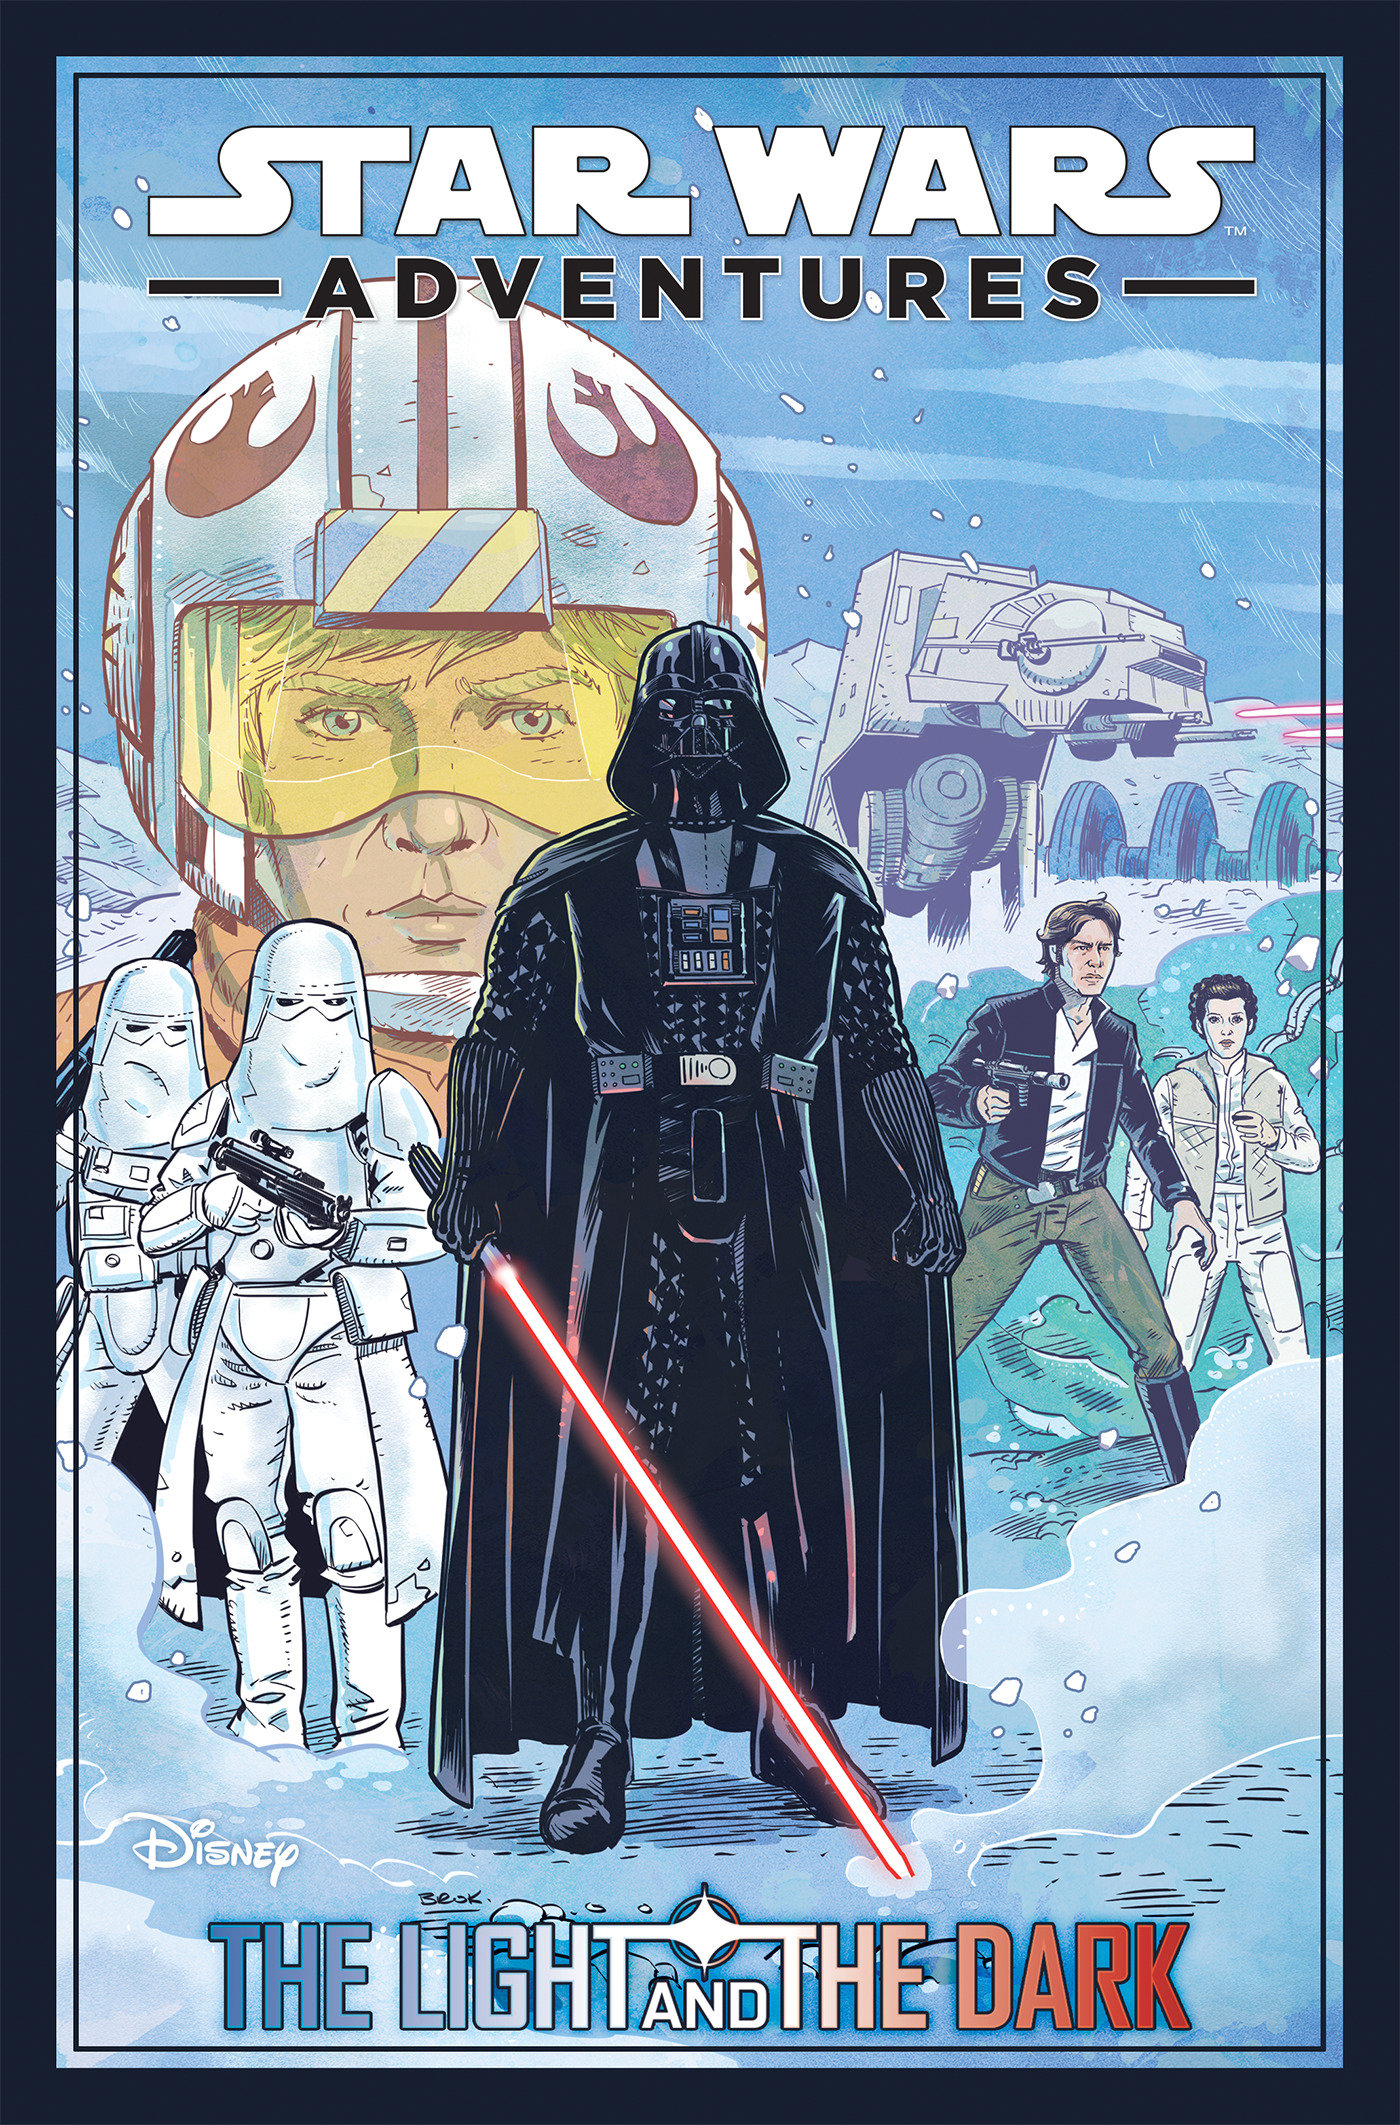 Star Wars Adventures: The Light and the Dark (22.06.2021)